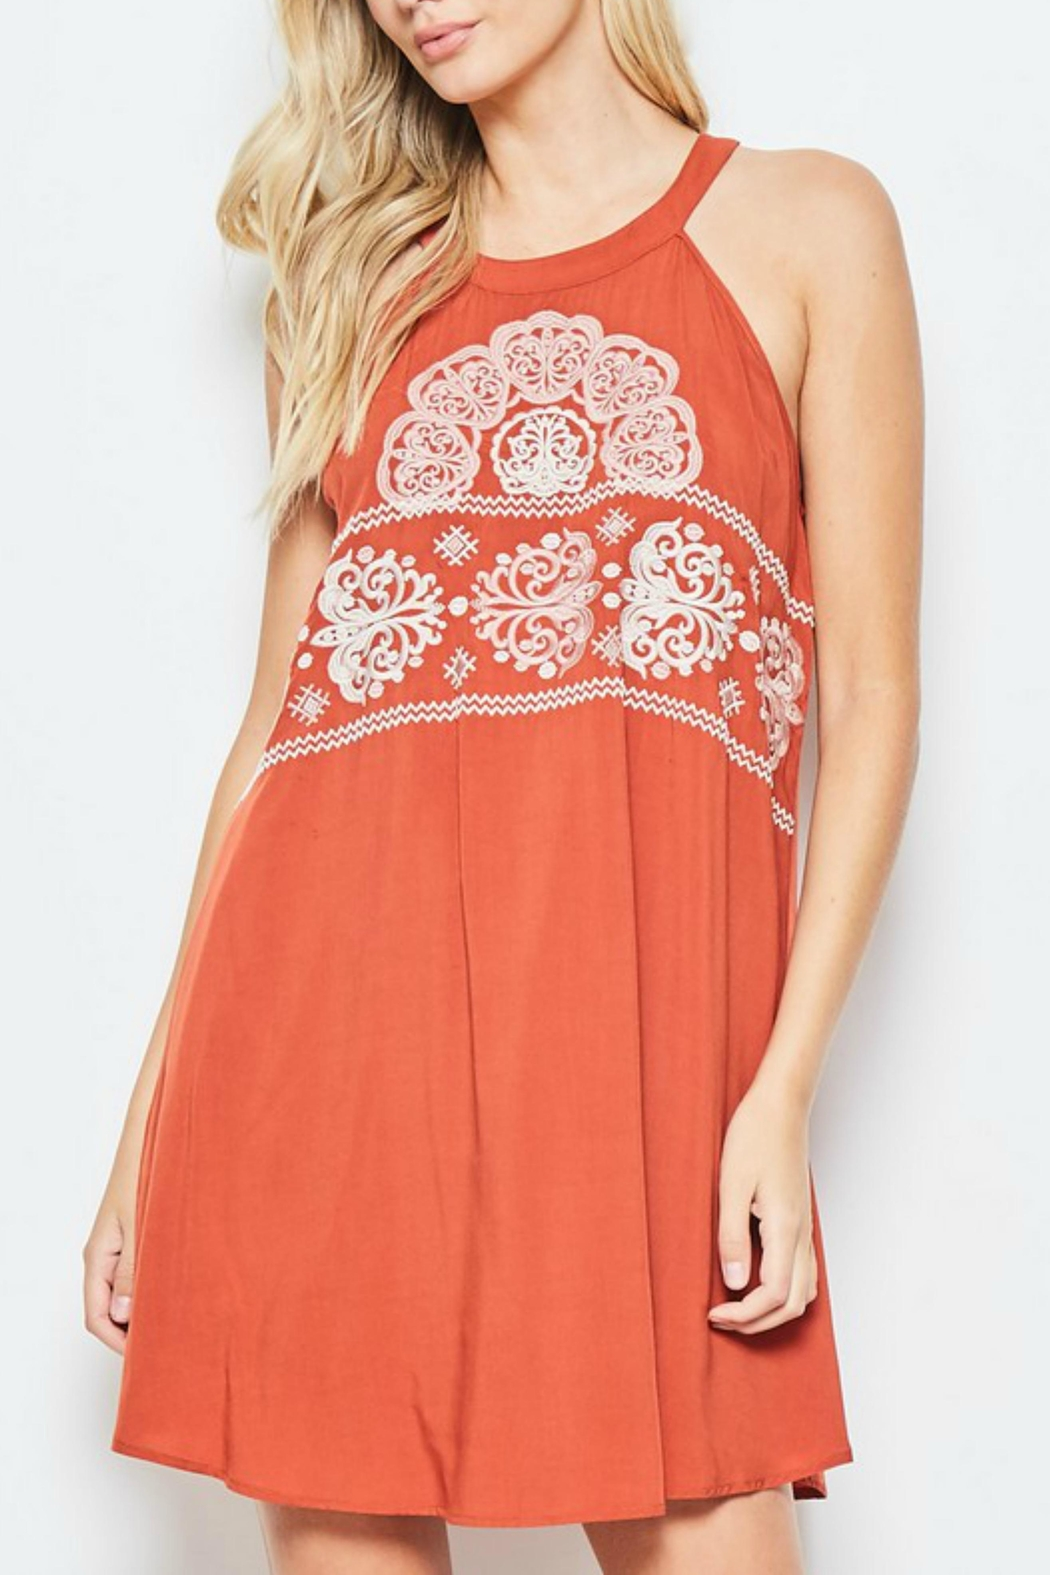 Andree by Unit Embroidered Halter Top/dress - Main Image